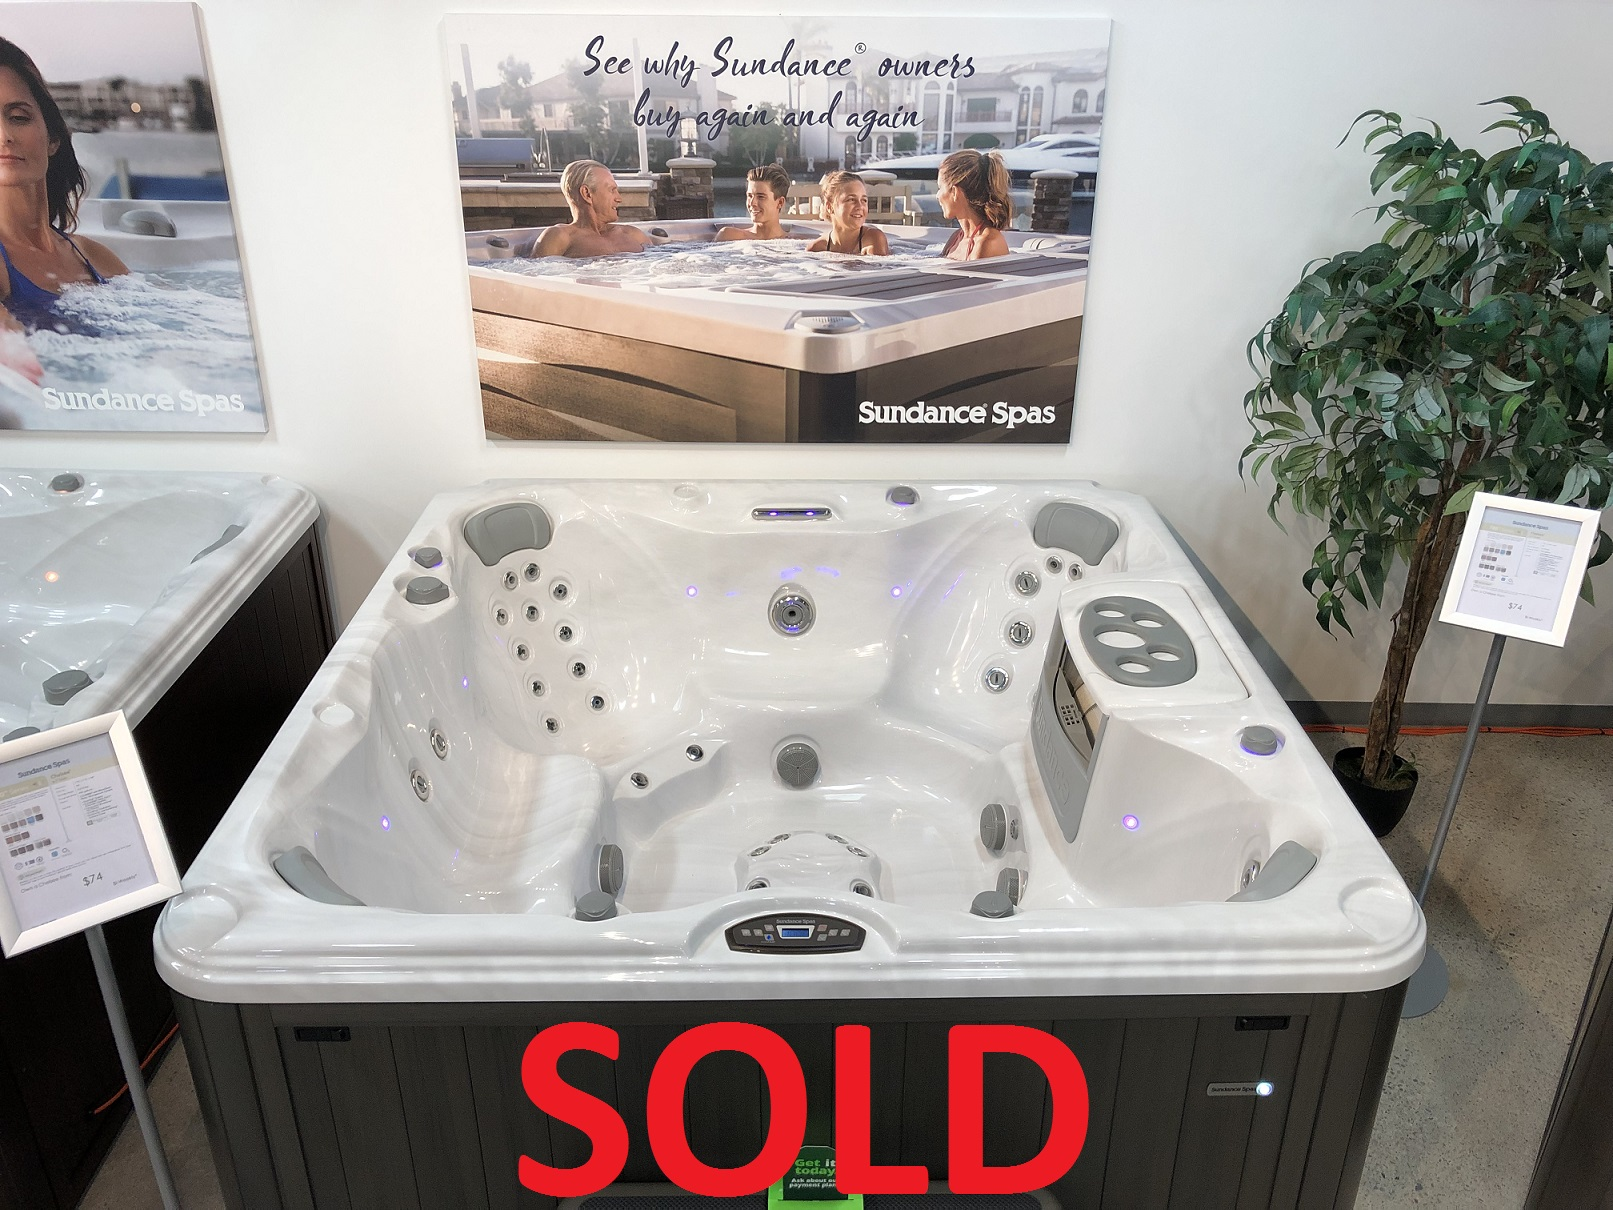 Sundance Spas 780 Series Chelsee 7 person hot tub spa whirlpool store near me Hamilton Ontario